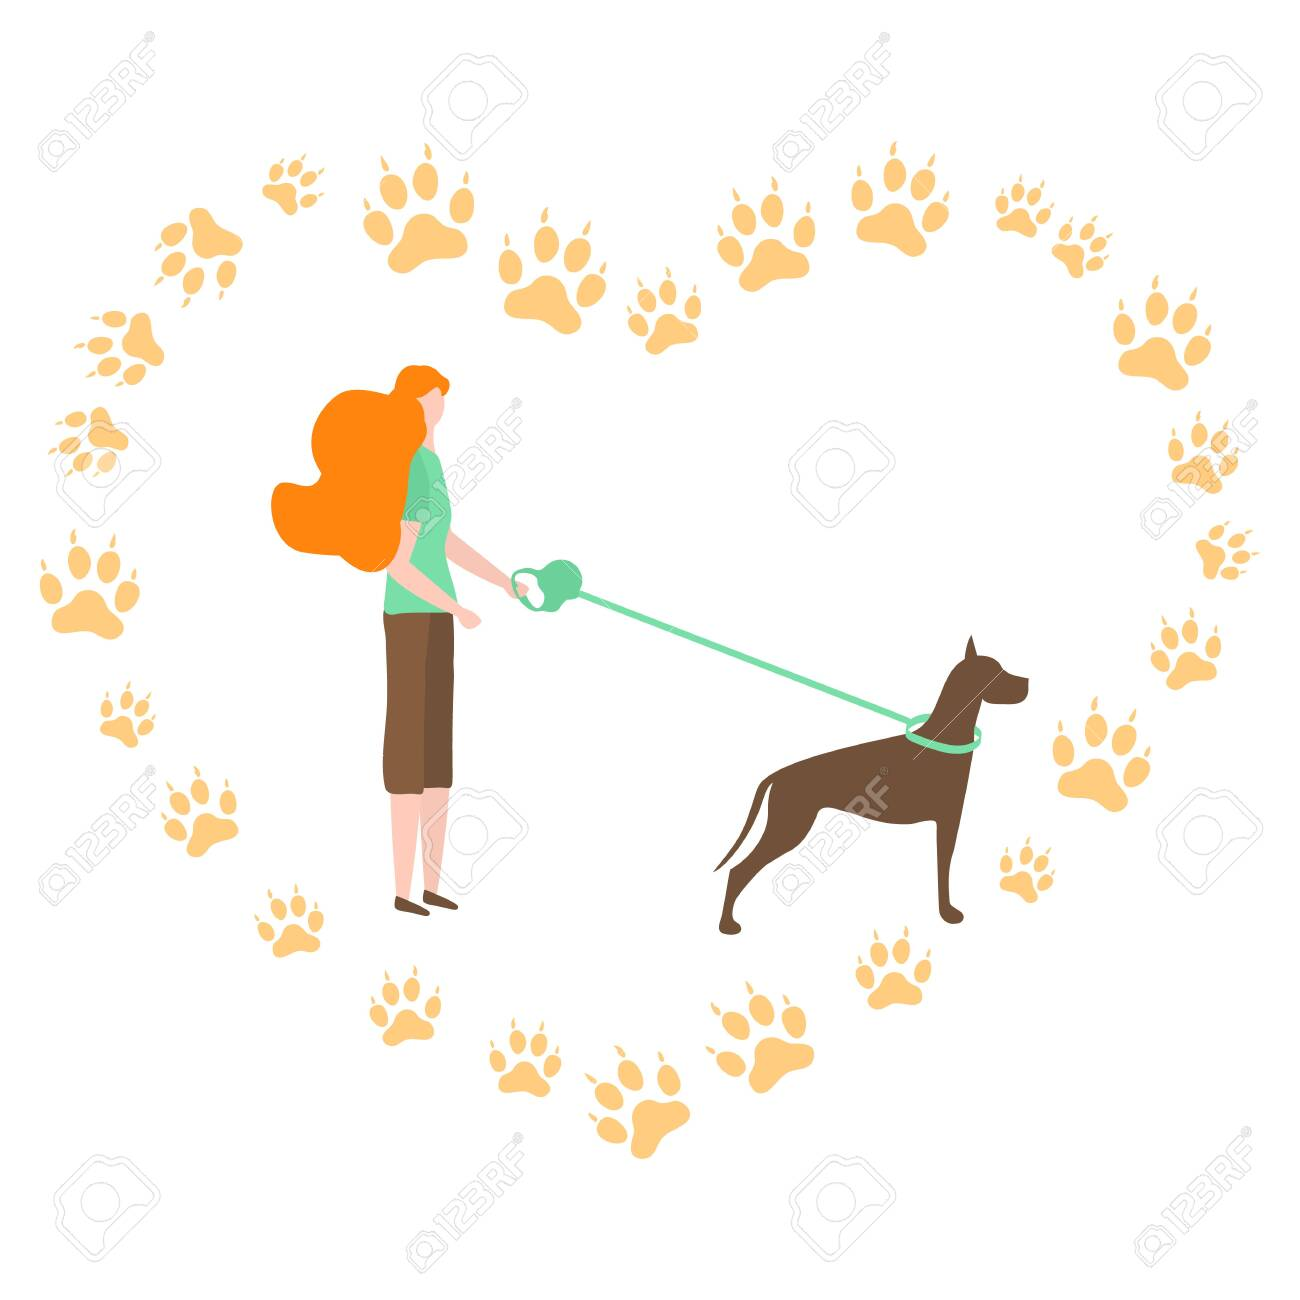 vector illustration with people walk with dog on a leash canine royalty free cliparts vectors and stock illustration image 133641128 123rf com